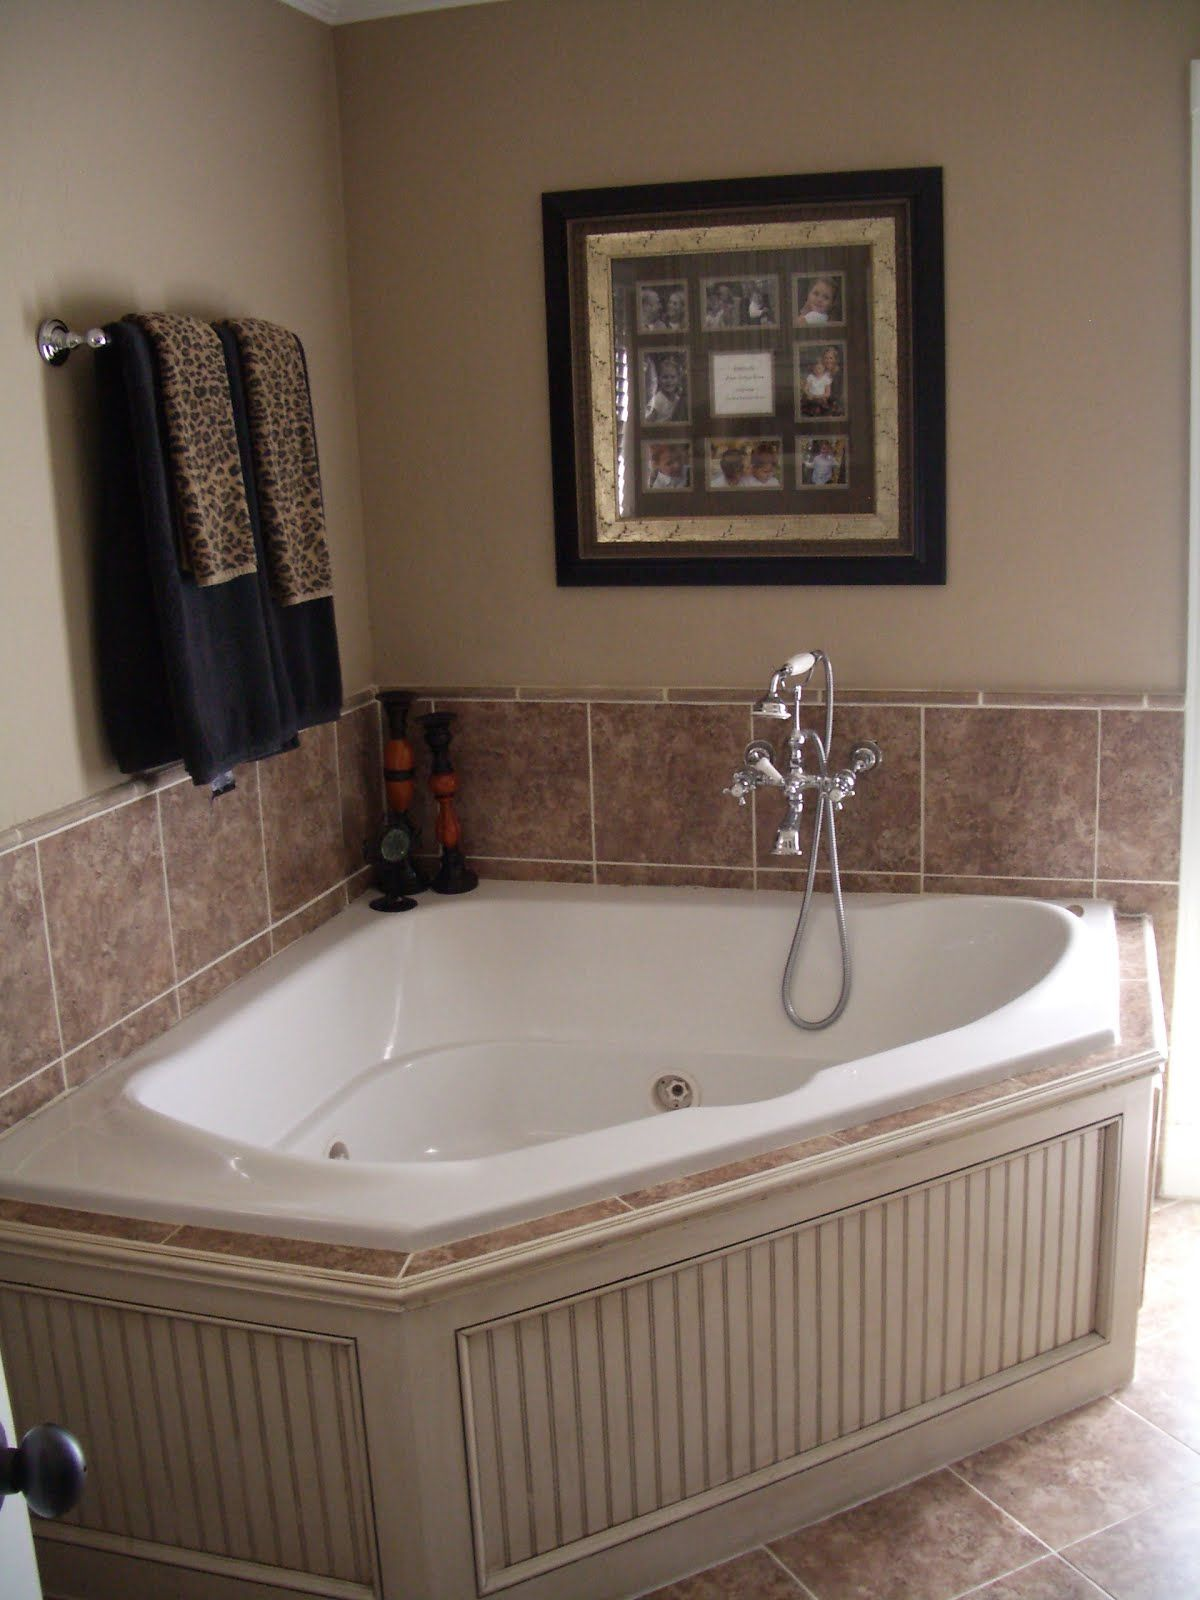 paint color/treatment on the tub surround | For the Home | Pinterest ...